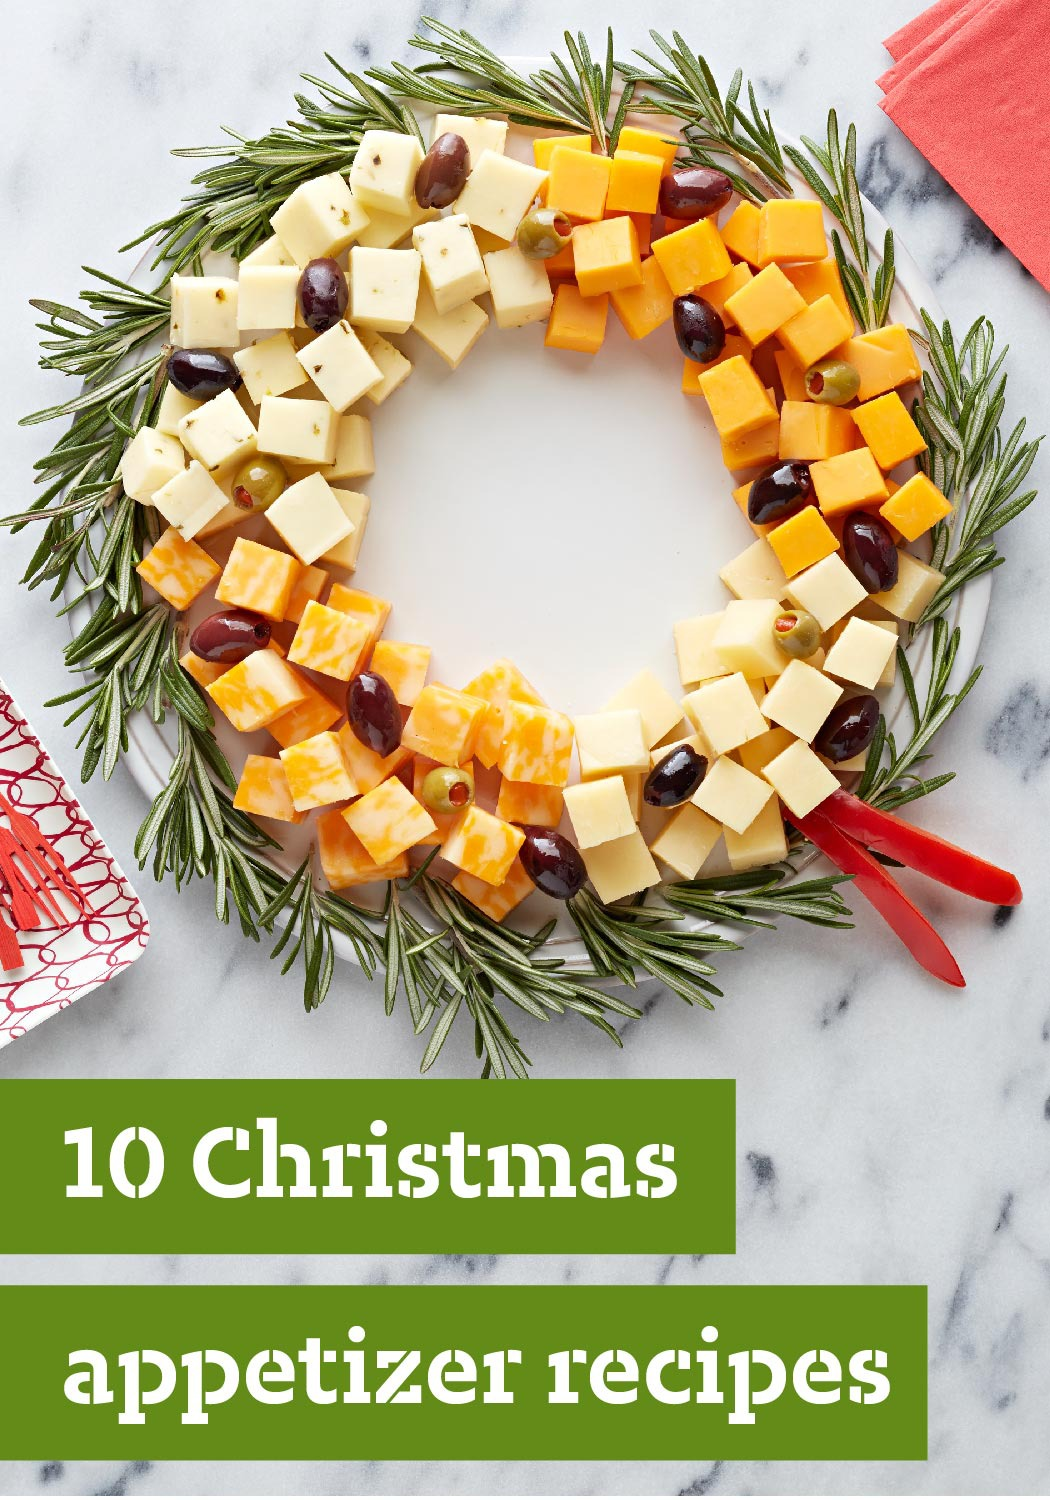 10 Christmas Appetizer Recipes — Planning your Christmas dinner menu? Start the